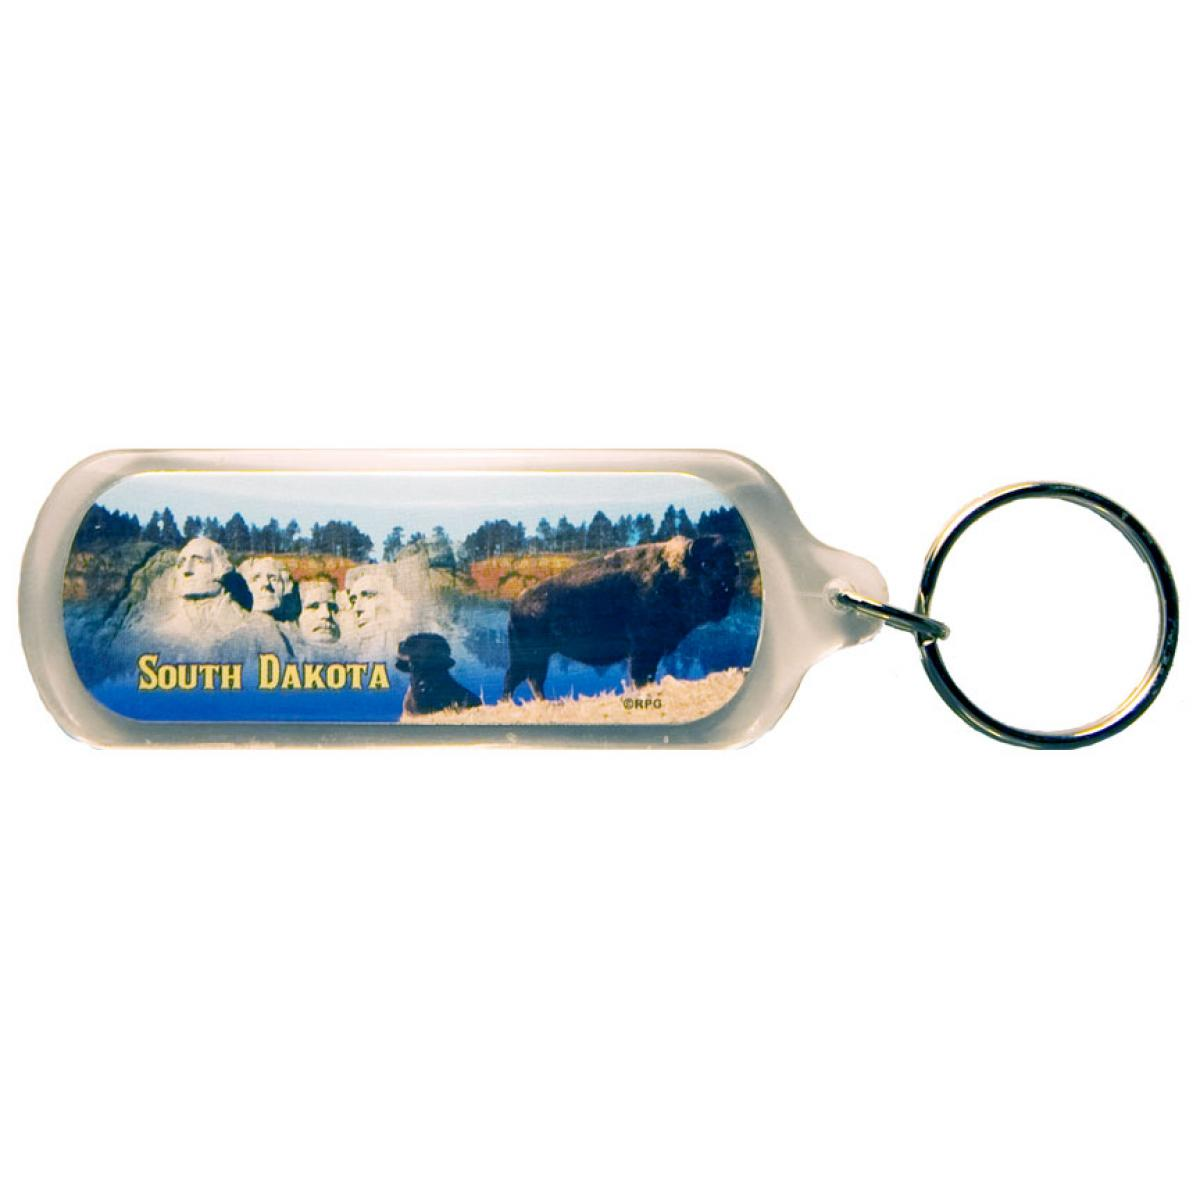 SOUTH DAKOTA MULTI-VIEW ACRYLIC KEYCHAIN